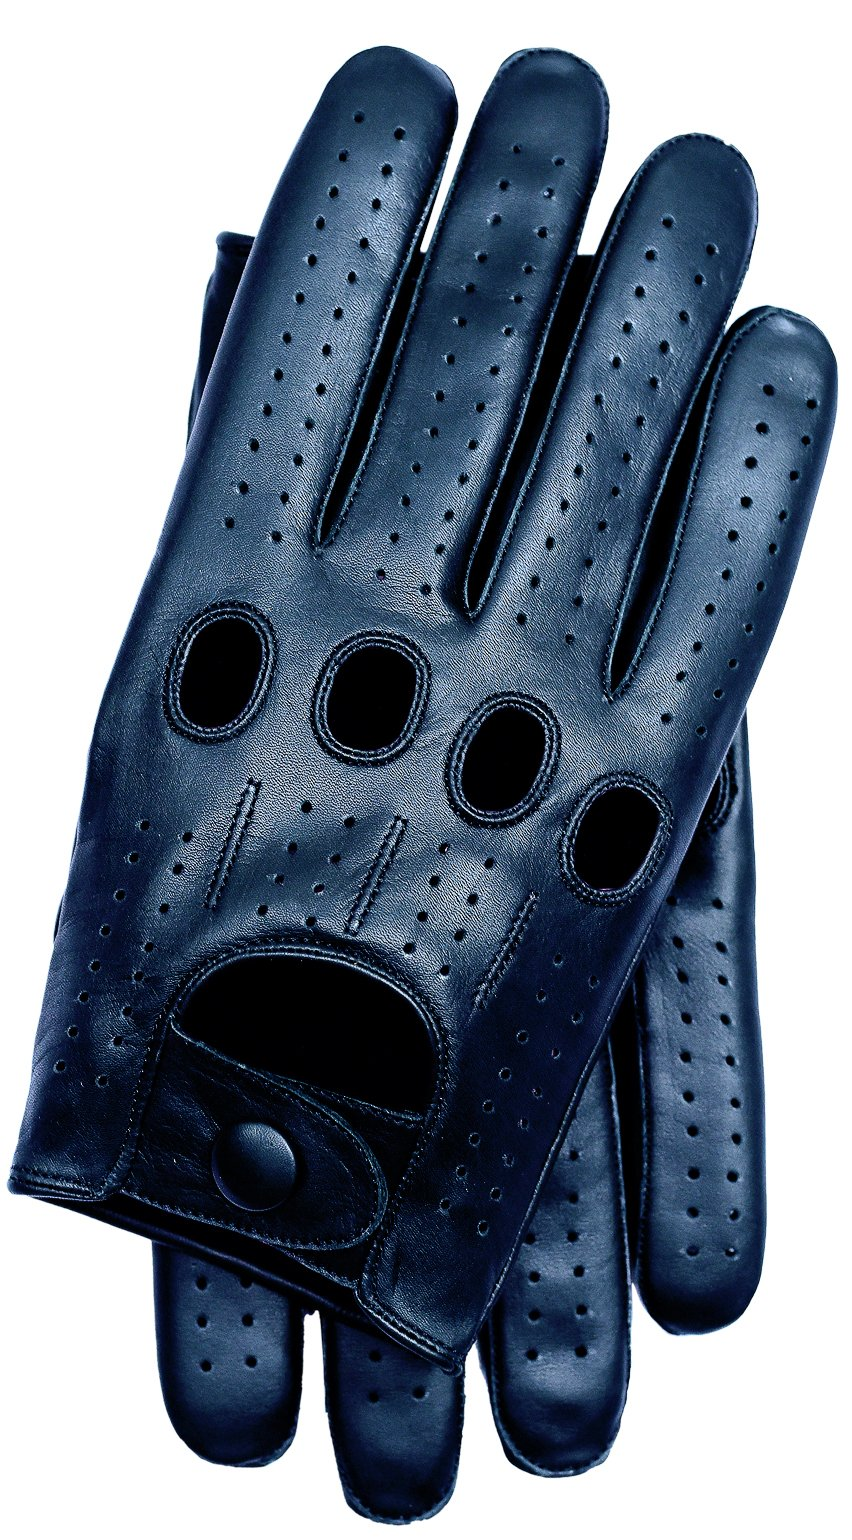 Riparo Genuine Leather Full-finger Driving Gloves (Small, Black)